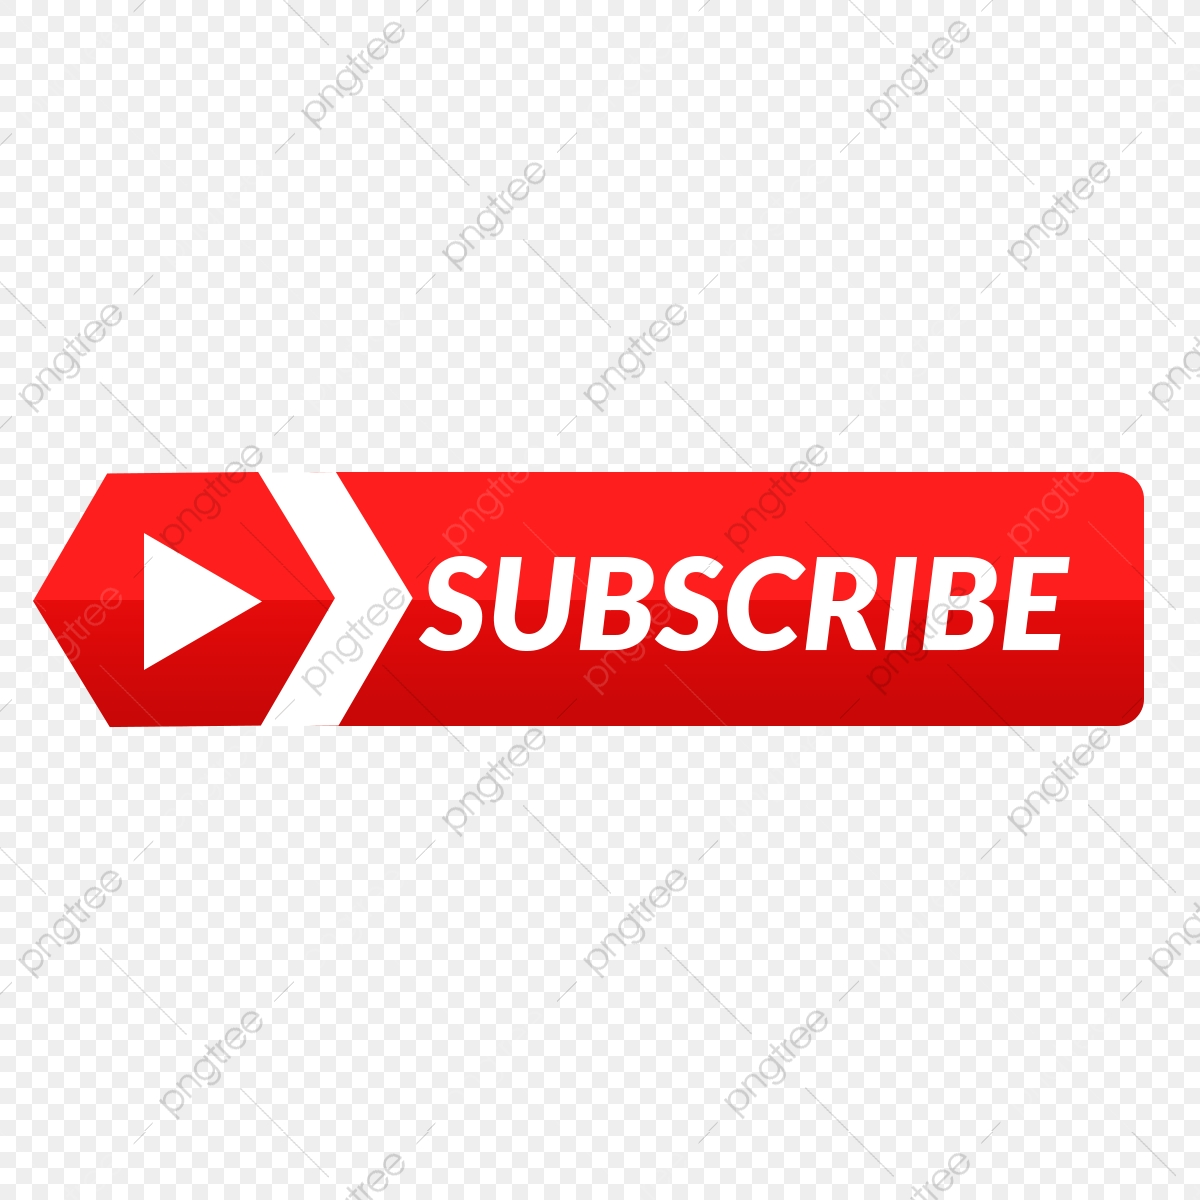 subscribe png transparent images free youtube subscribe icon subscribe button png and vector pngtree https pngtree com freepng subscribe youtube channel icon button 5008752 html